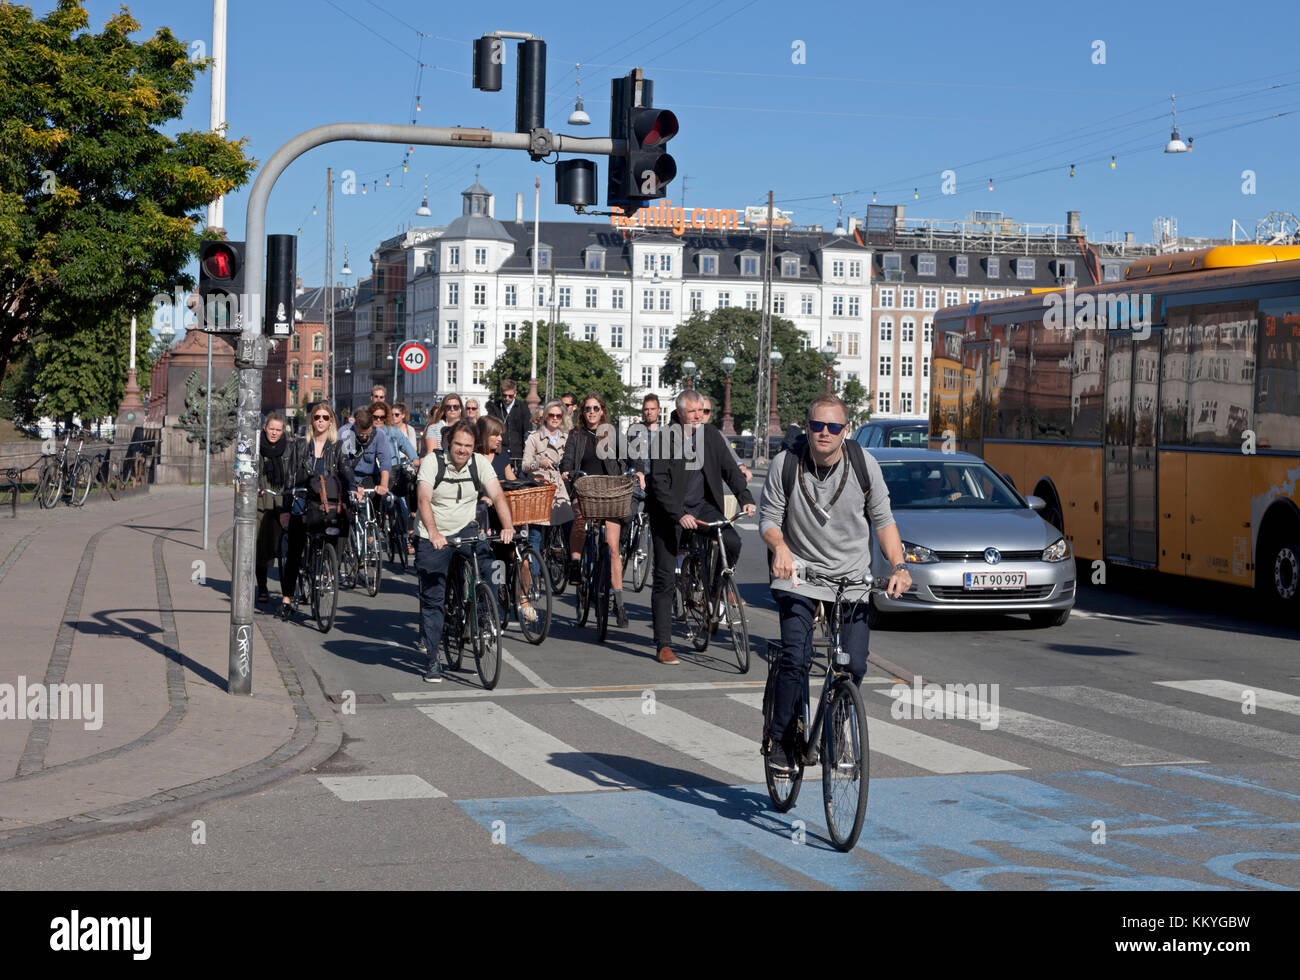 Summer late morning bicycle rush on bicycle path at the heavily bicycle-trafficked crossroads Frederiksborggade, - Stock Image